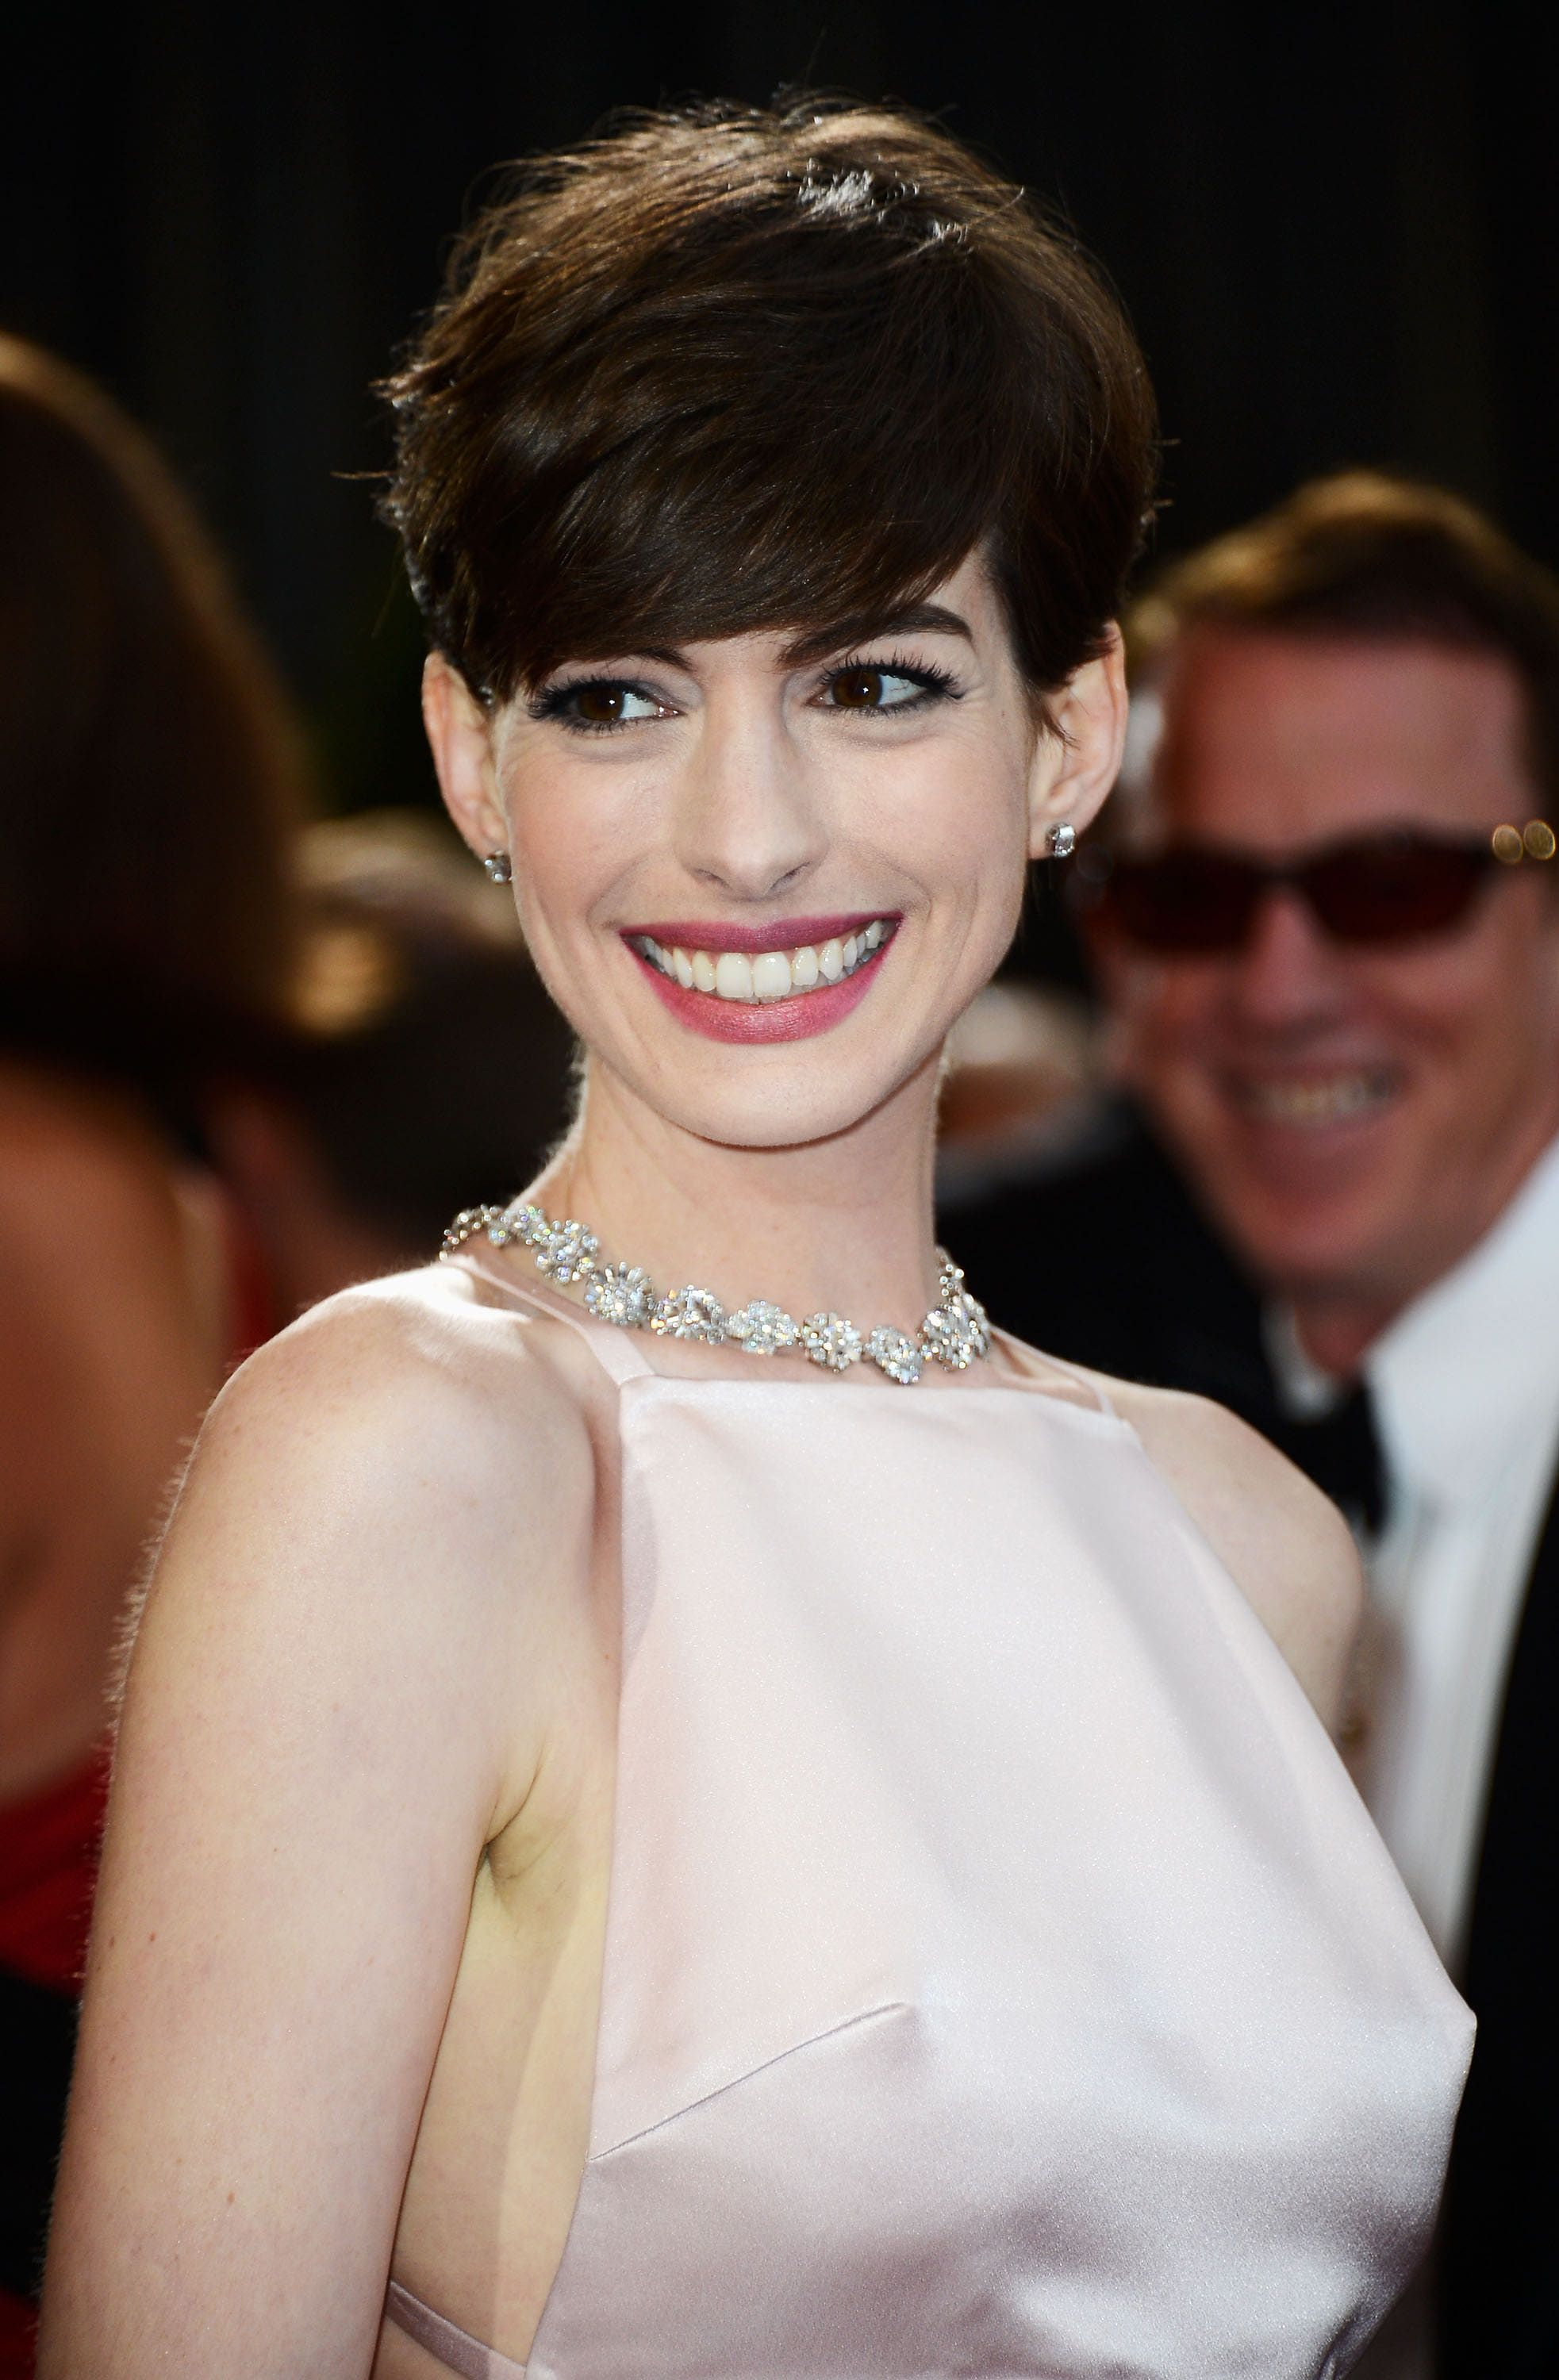 2013 Oscars - Anne Hathaway hair from front